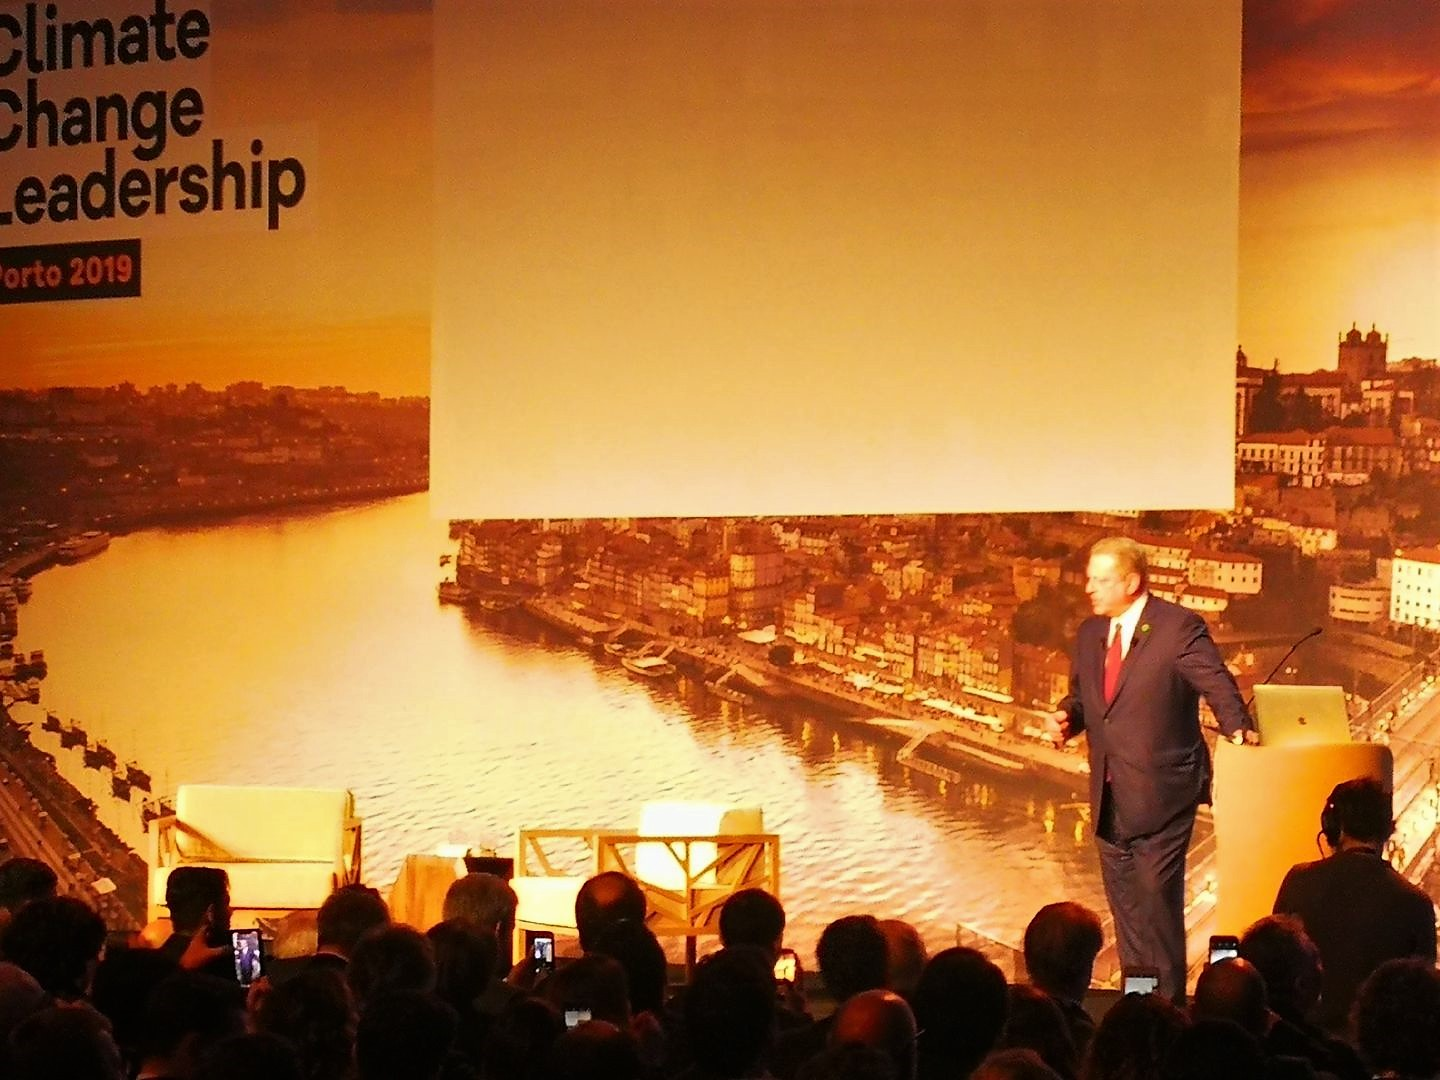 Al Gore en la conferencia Climate Change Leadership